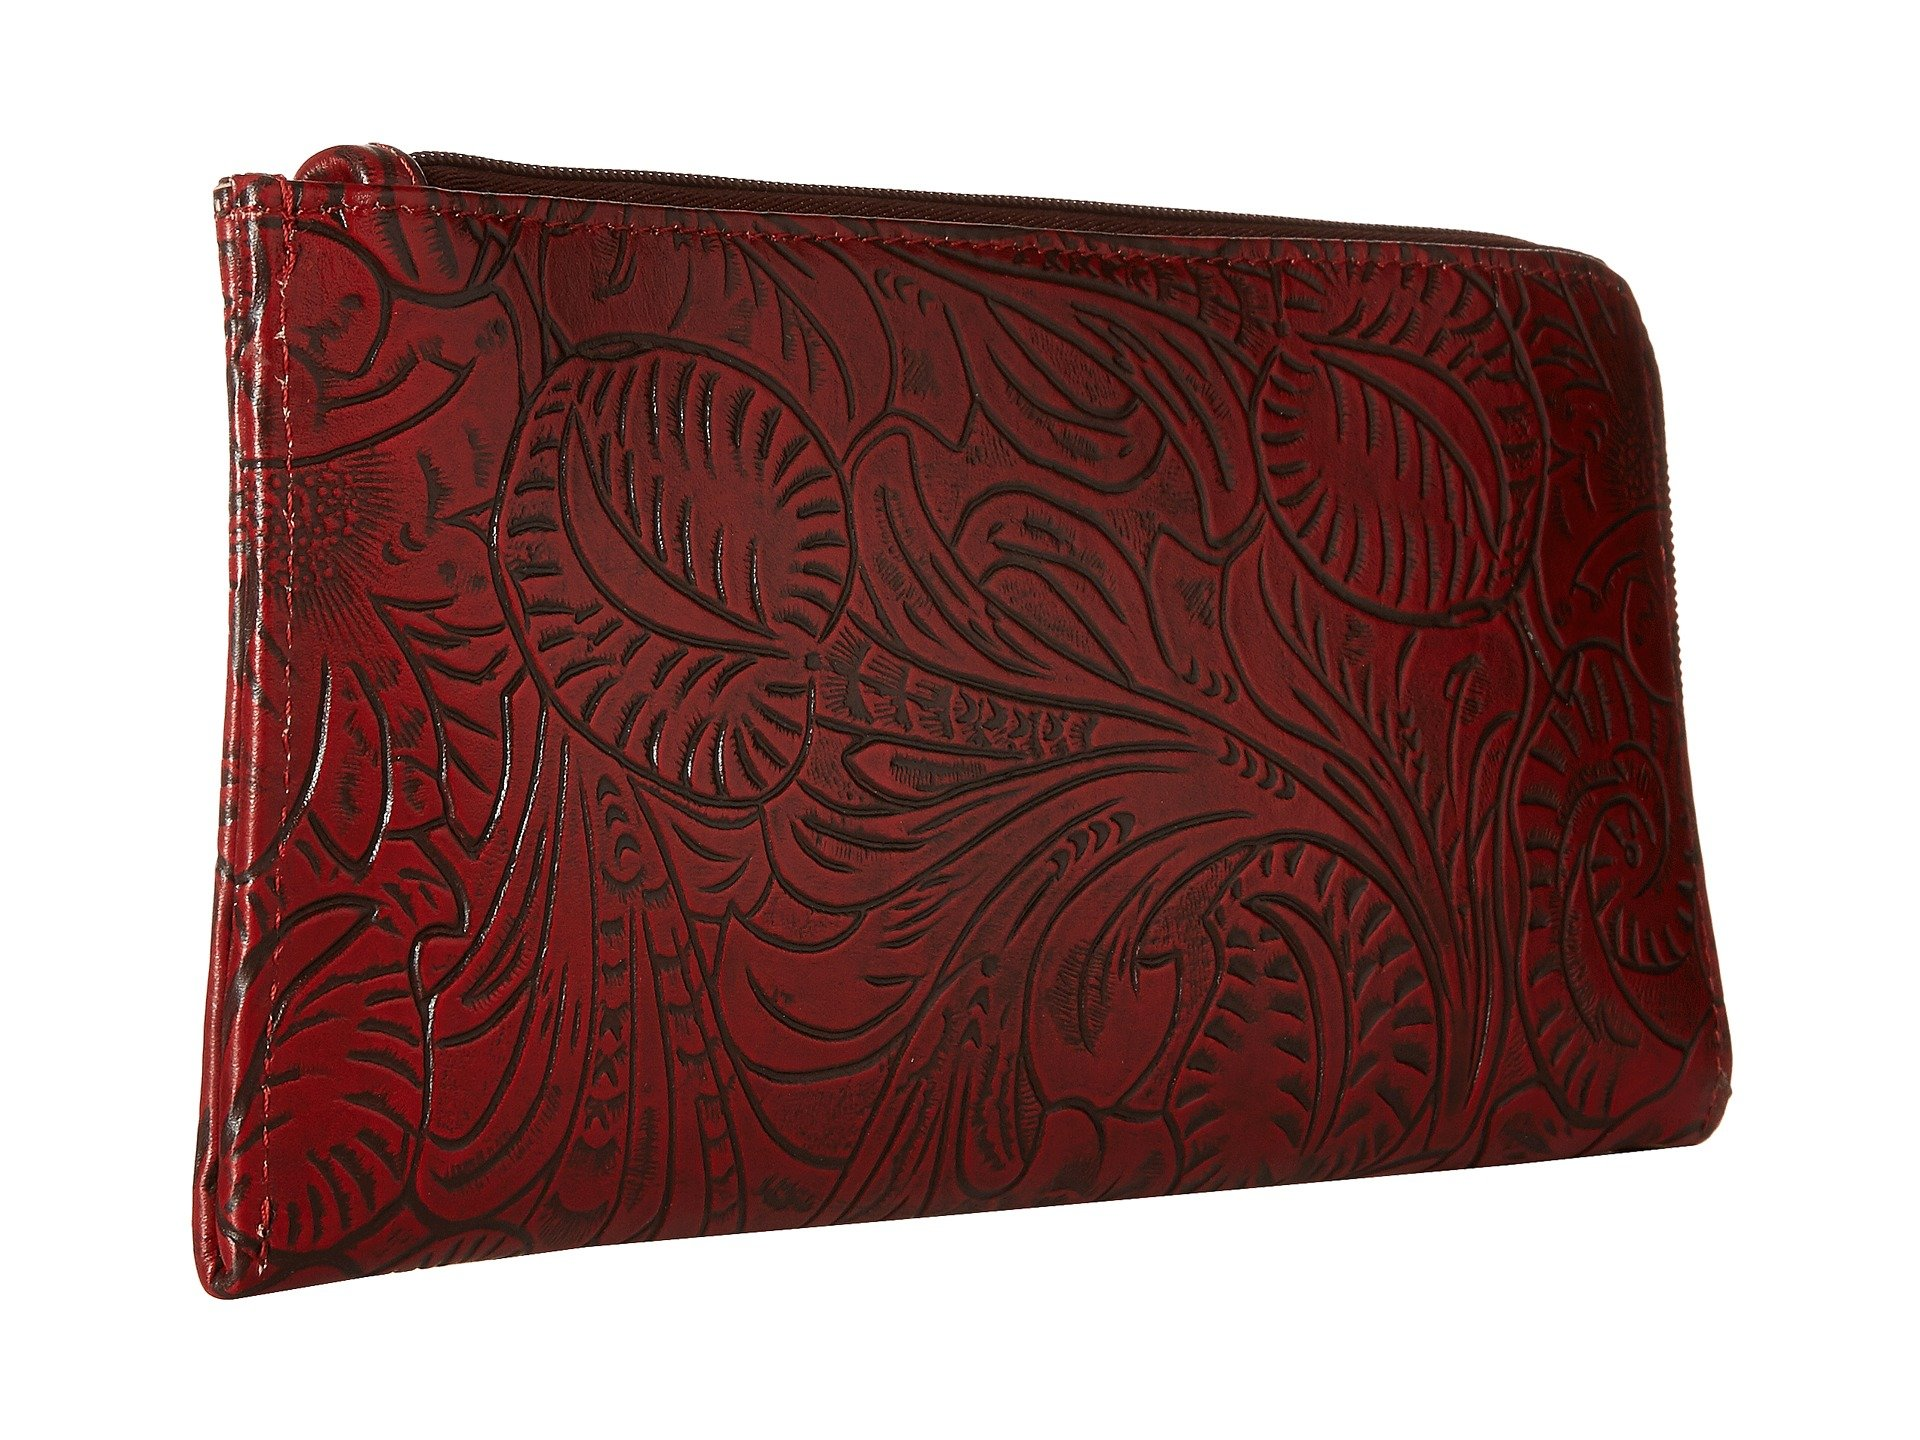 The Floral Clutch Ranchwear Sts Red 1q4wz6xX